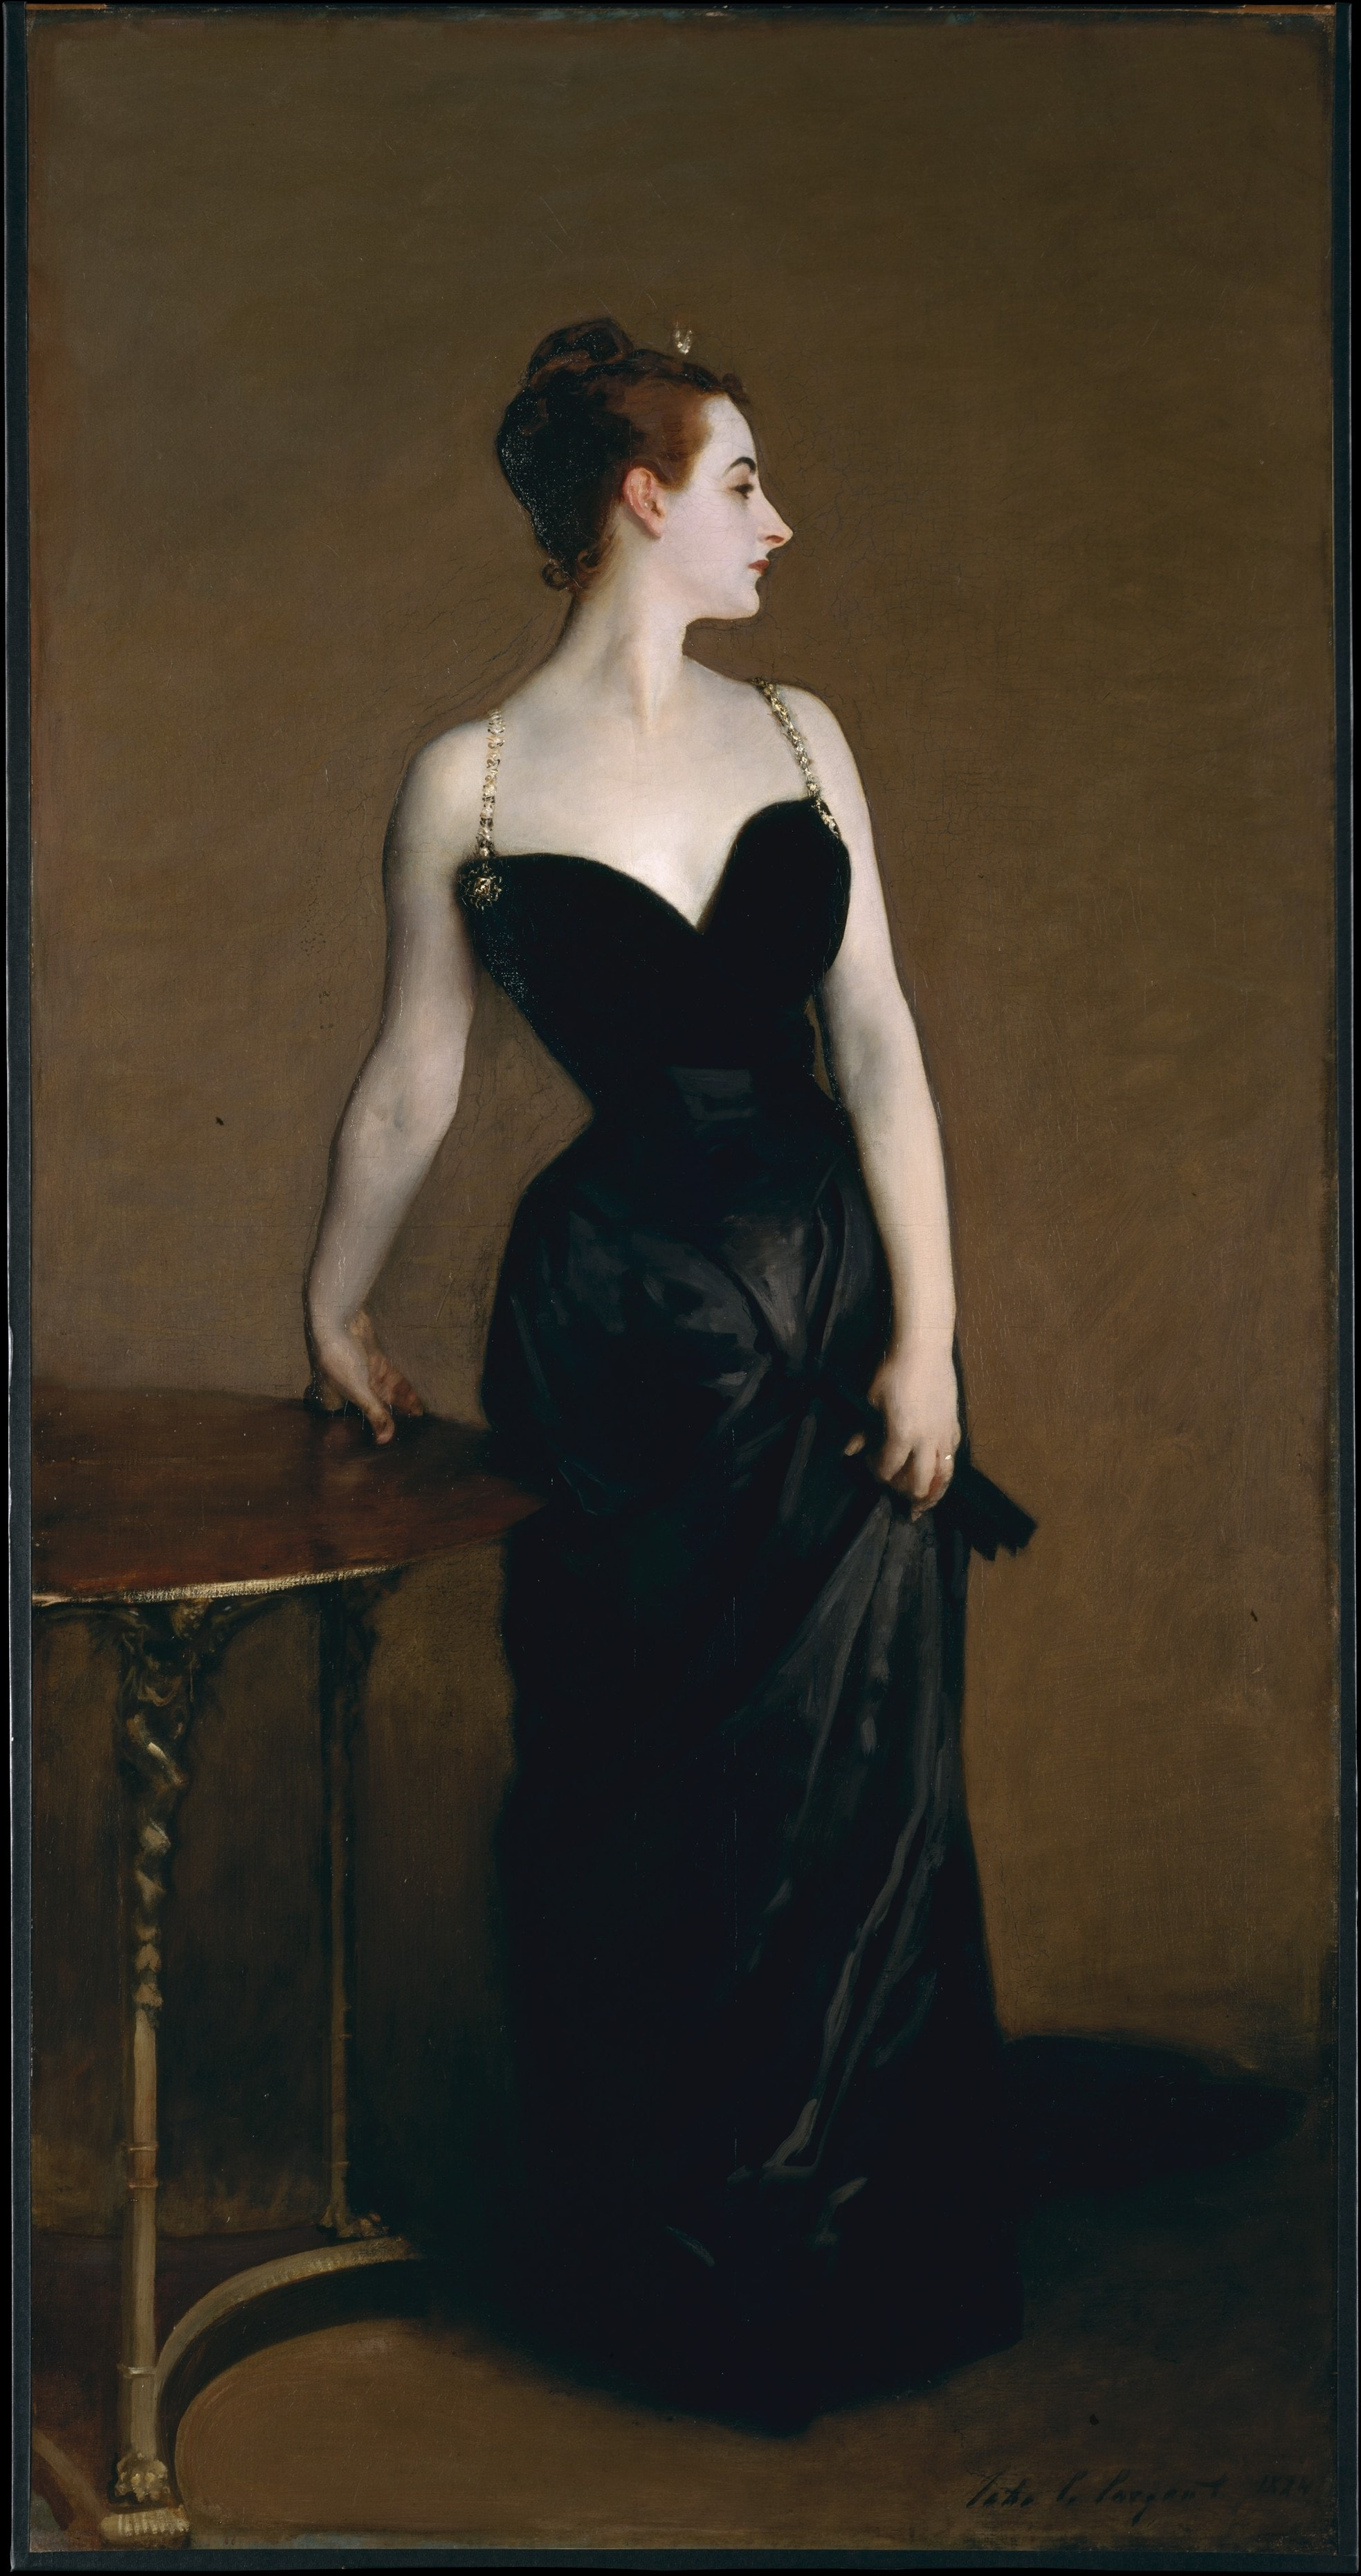 John Singer Sargent, Madame X (1883-84) | Courtesy of the Metropolitan Museum of Art